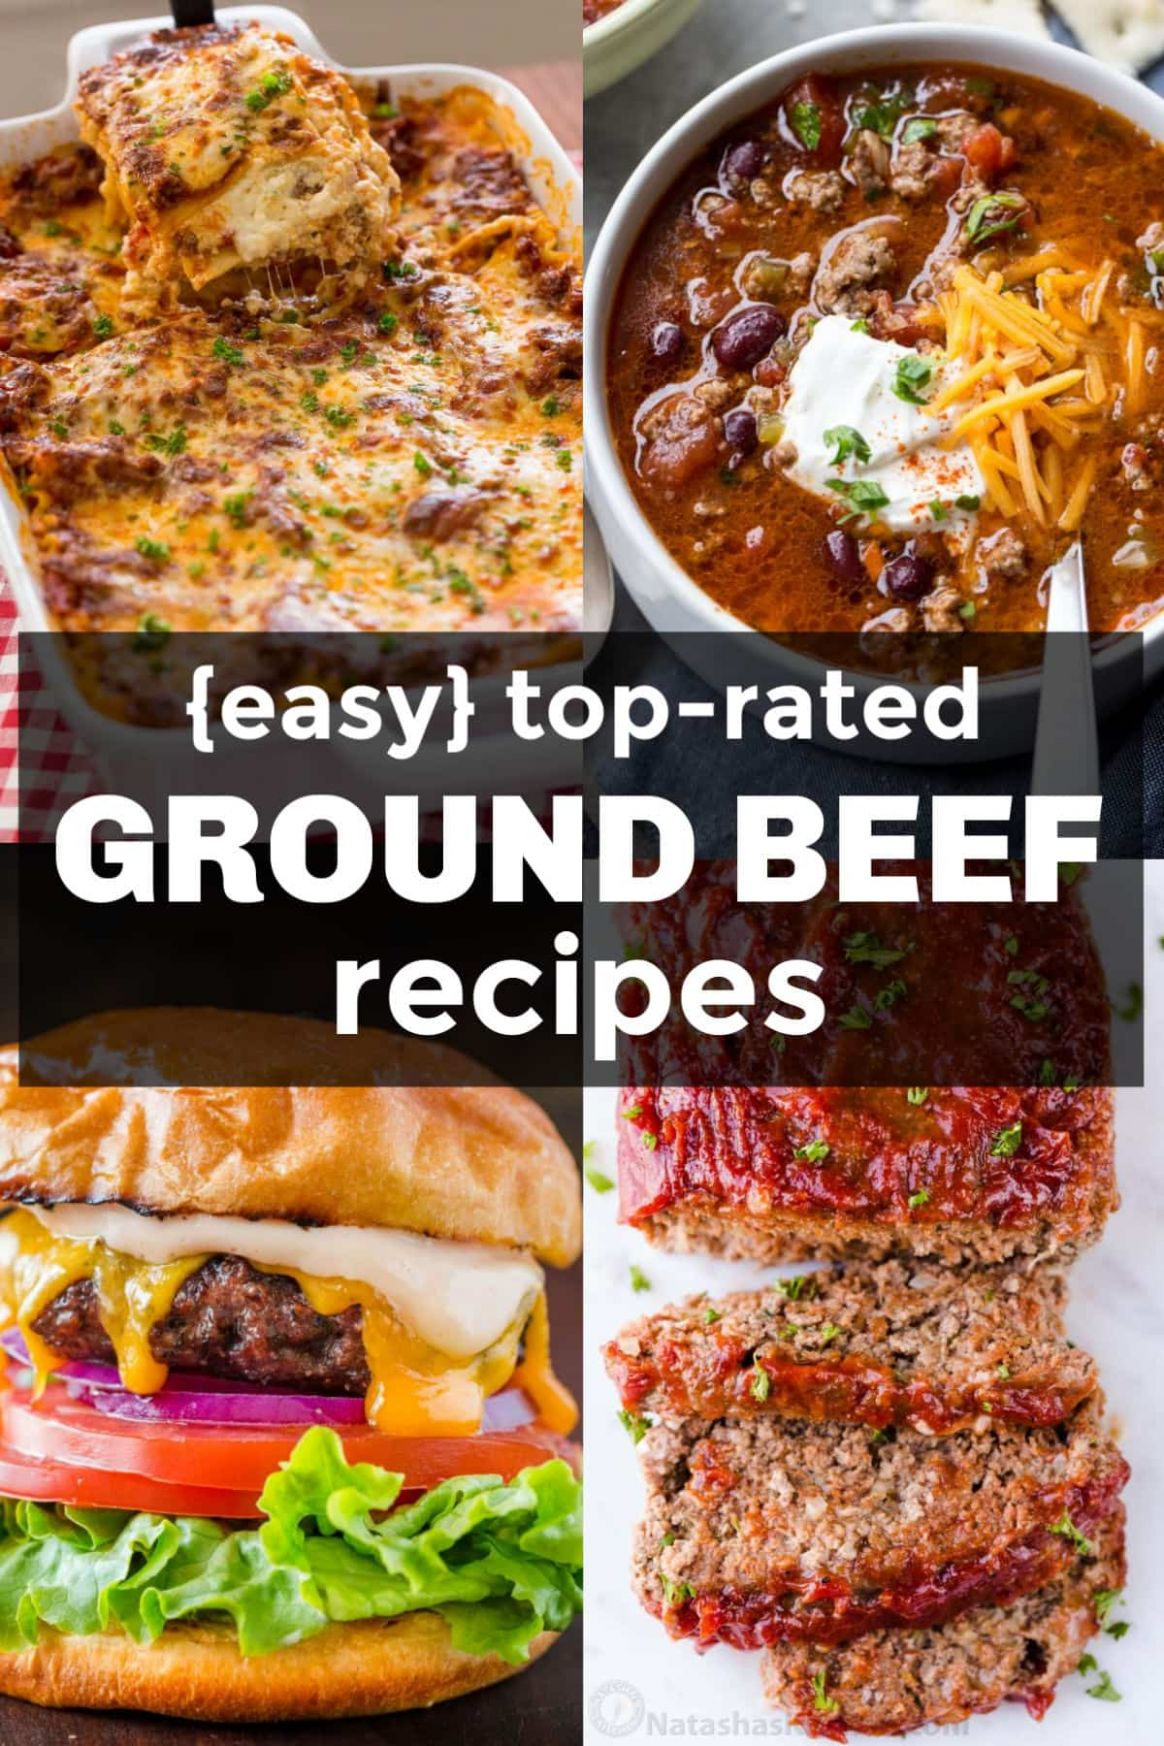 How to Cook Ground Beef for Ground Beef Recipes - Recipes Beef Dinner